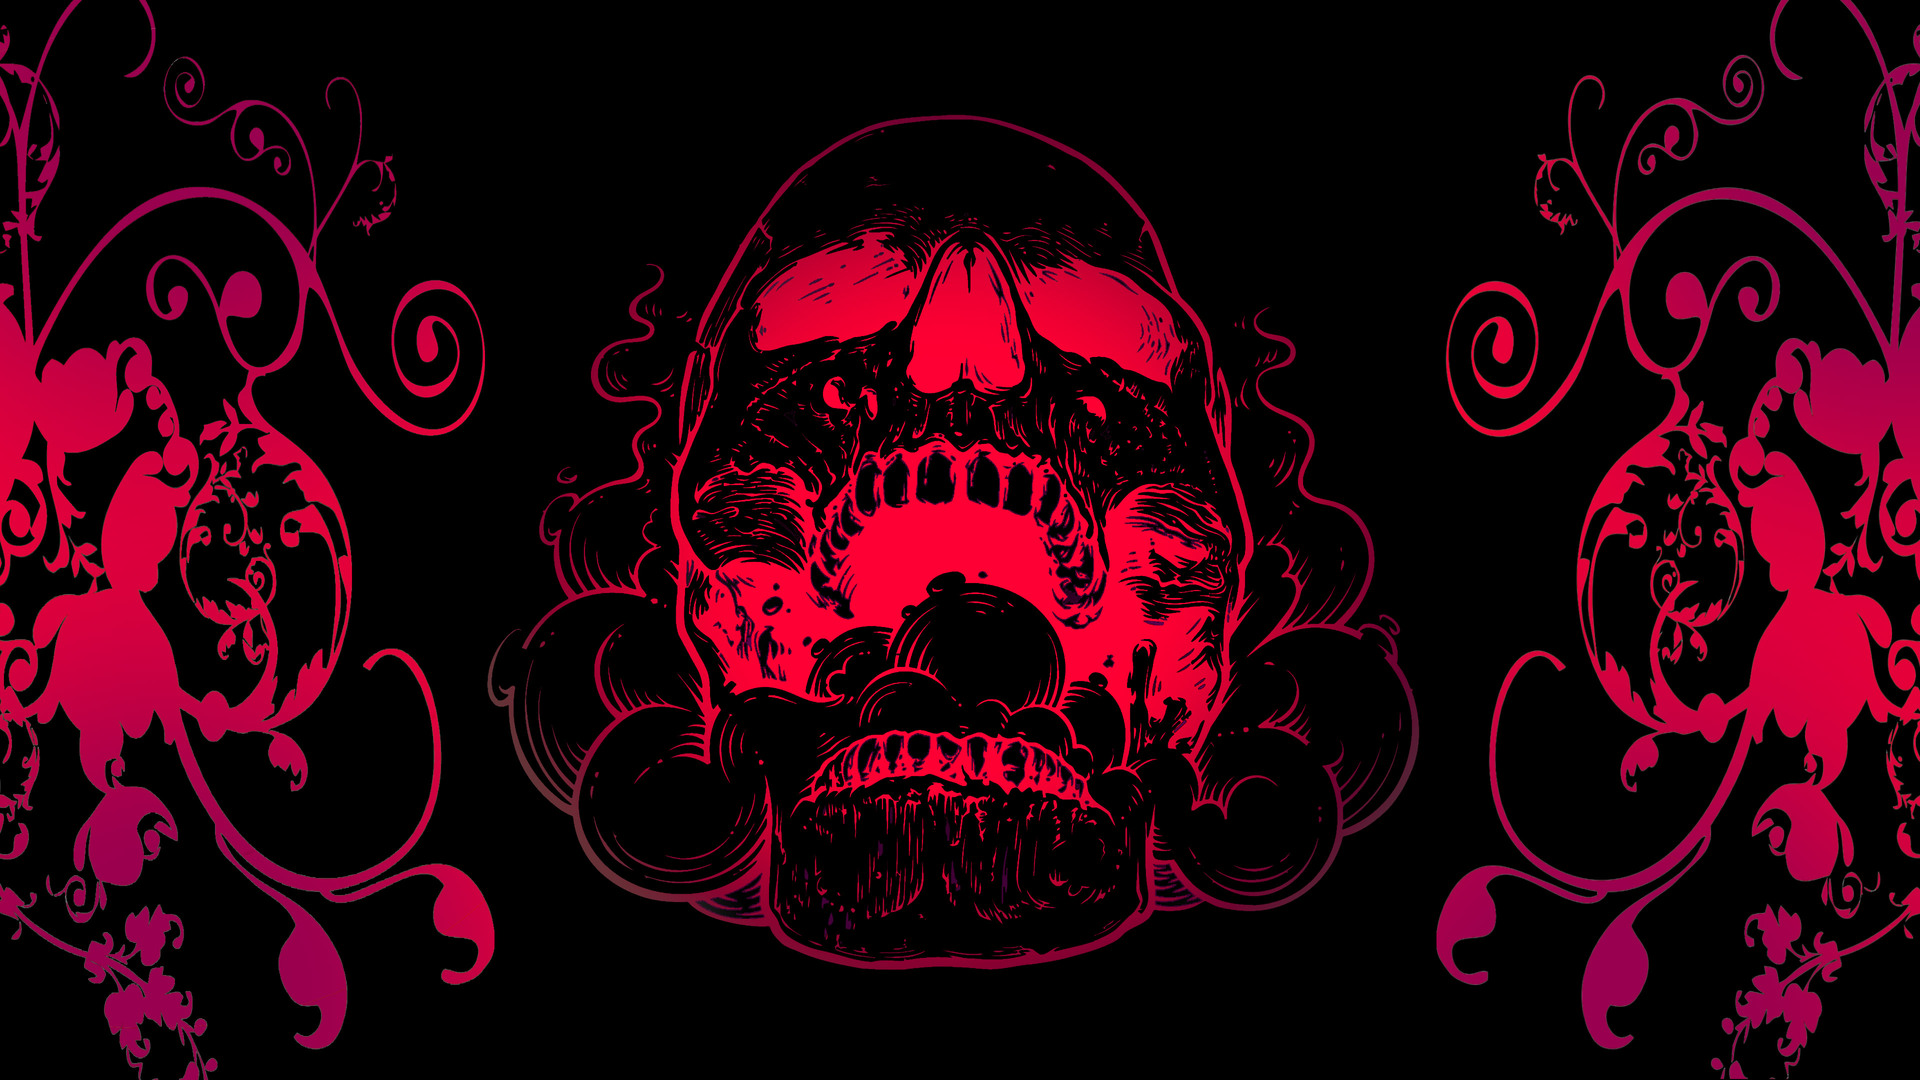 1920x1080 red skull flowers black background 4k laptop full hd 1080p